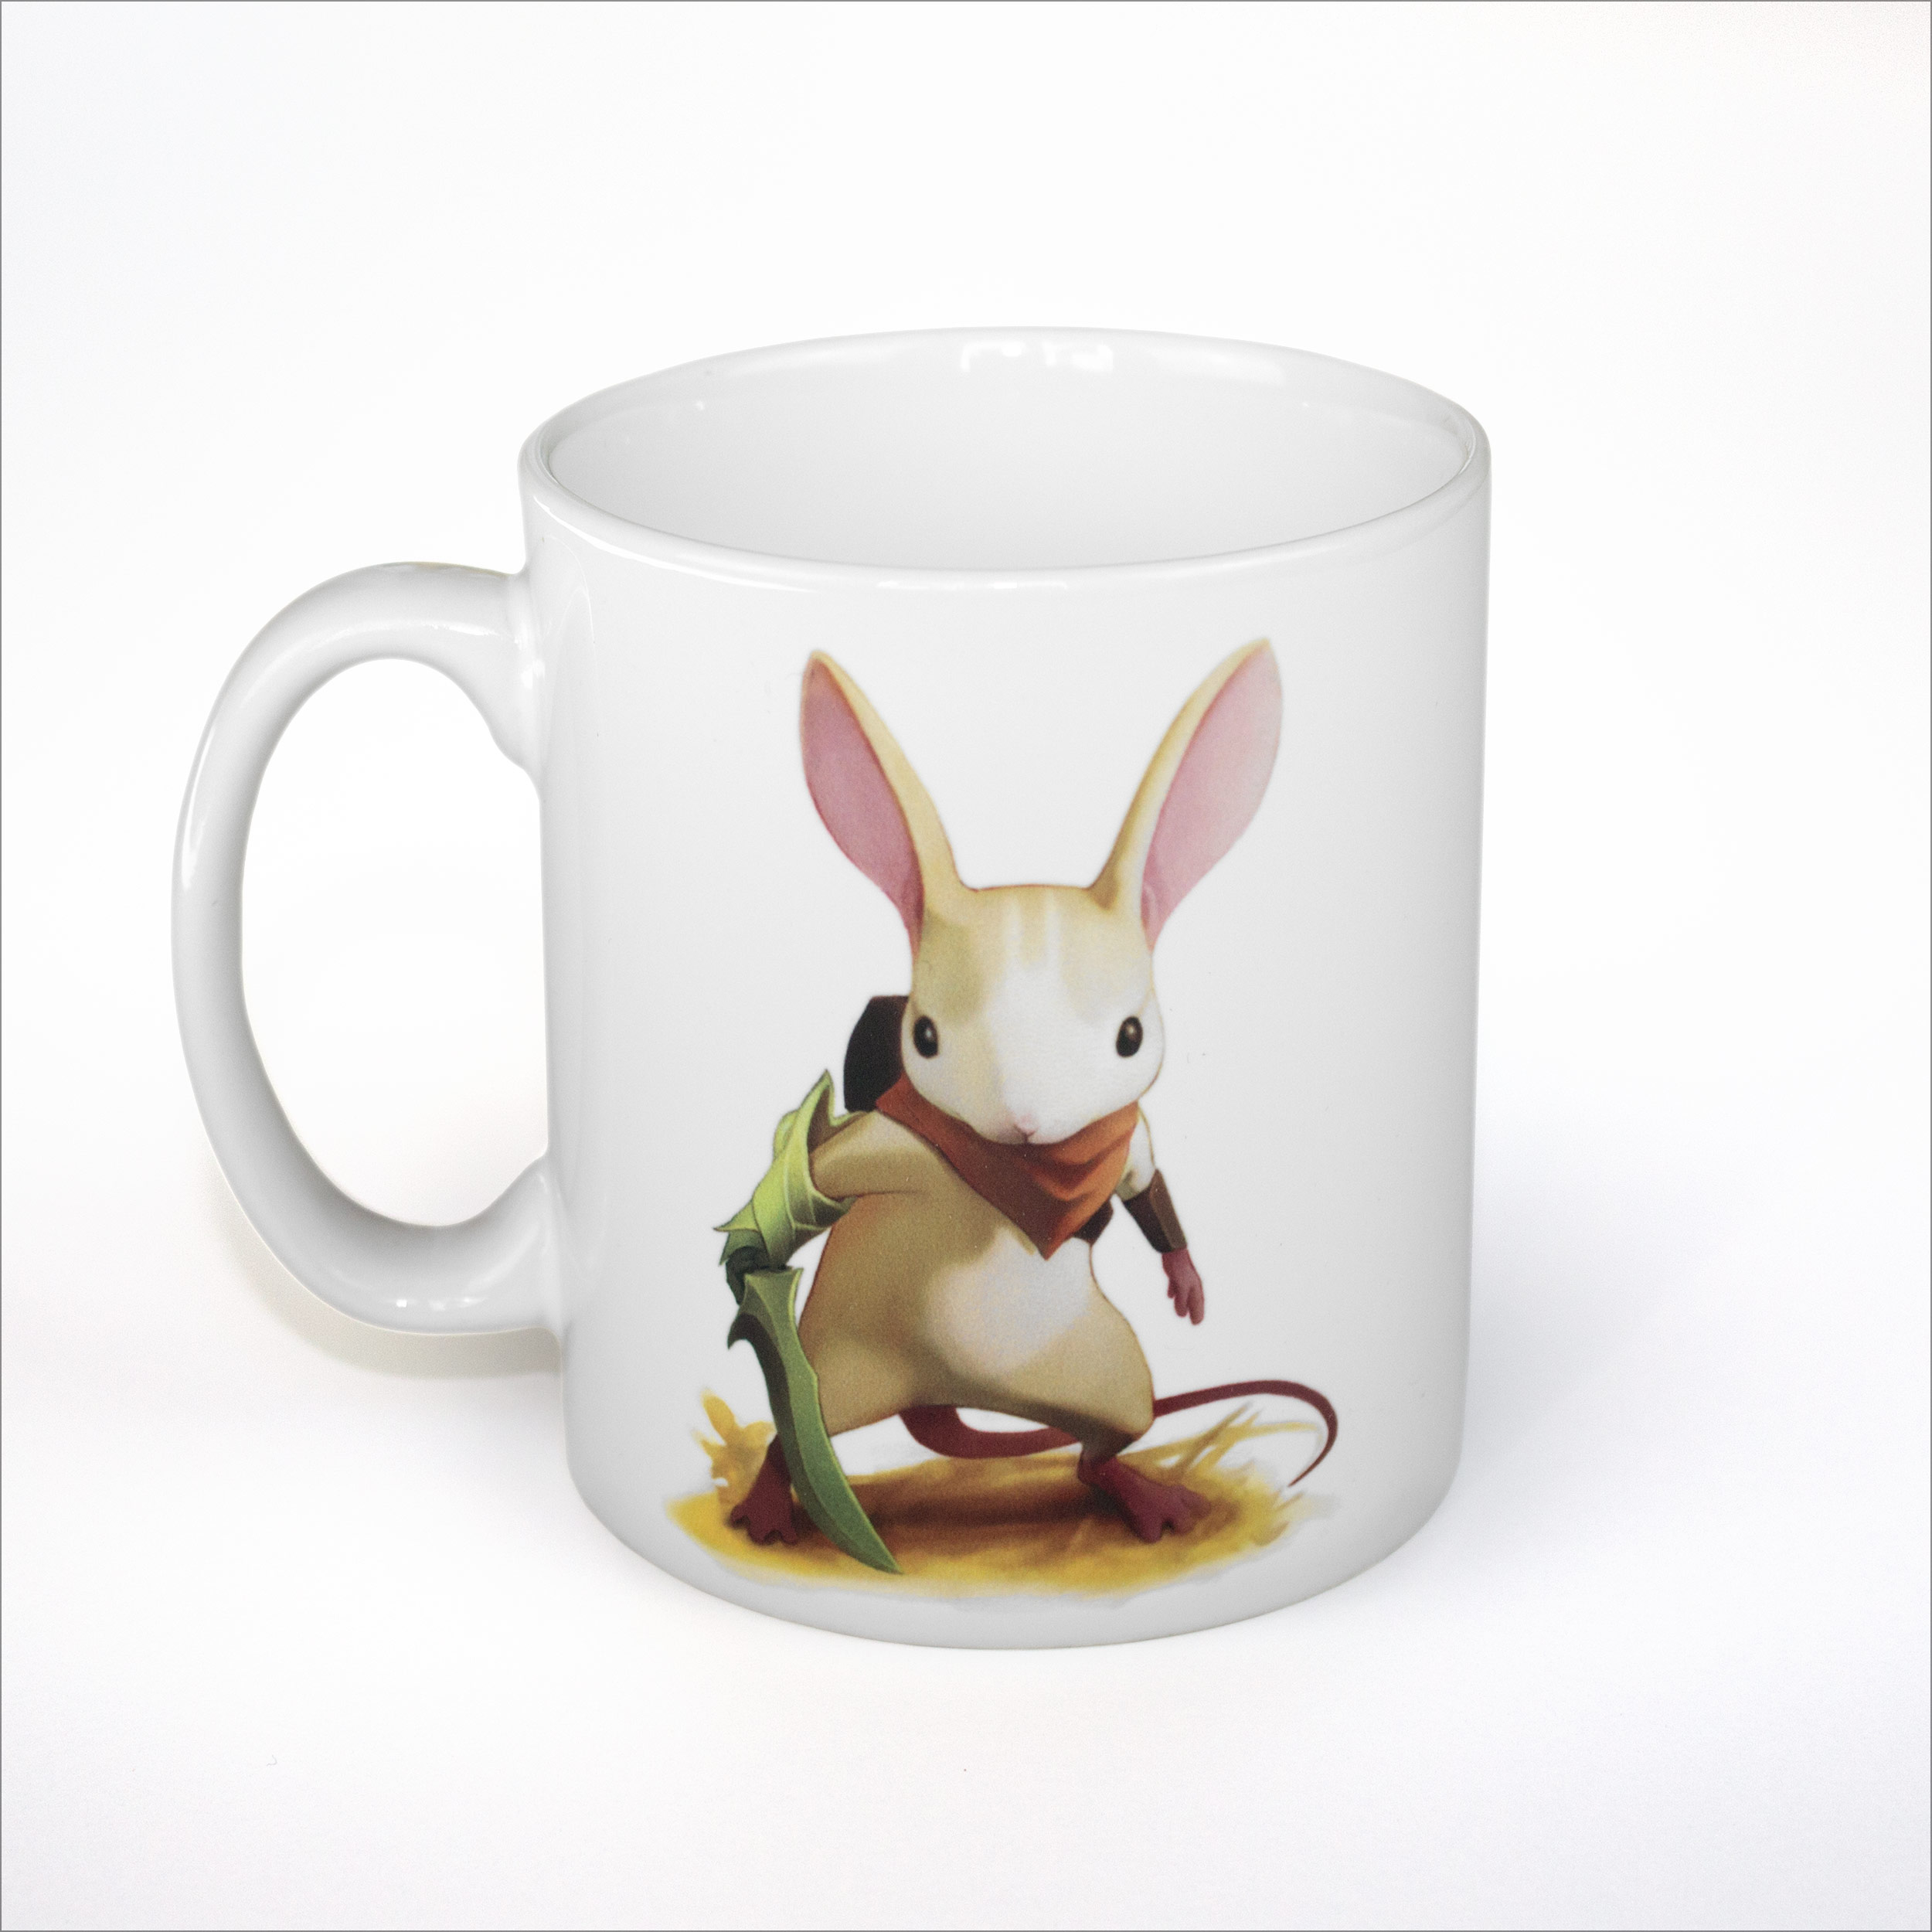 SOLD OUT - Quill Mug - Limited Edition